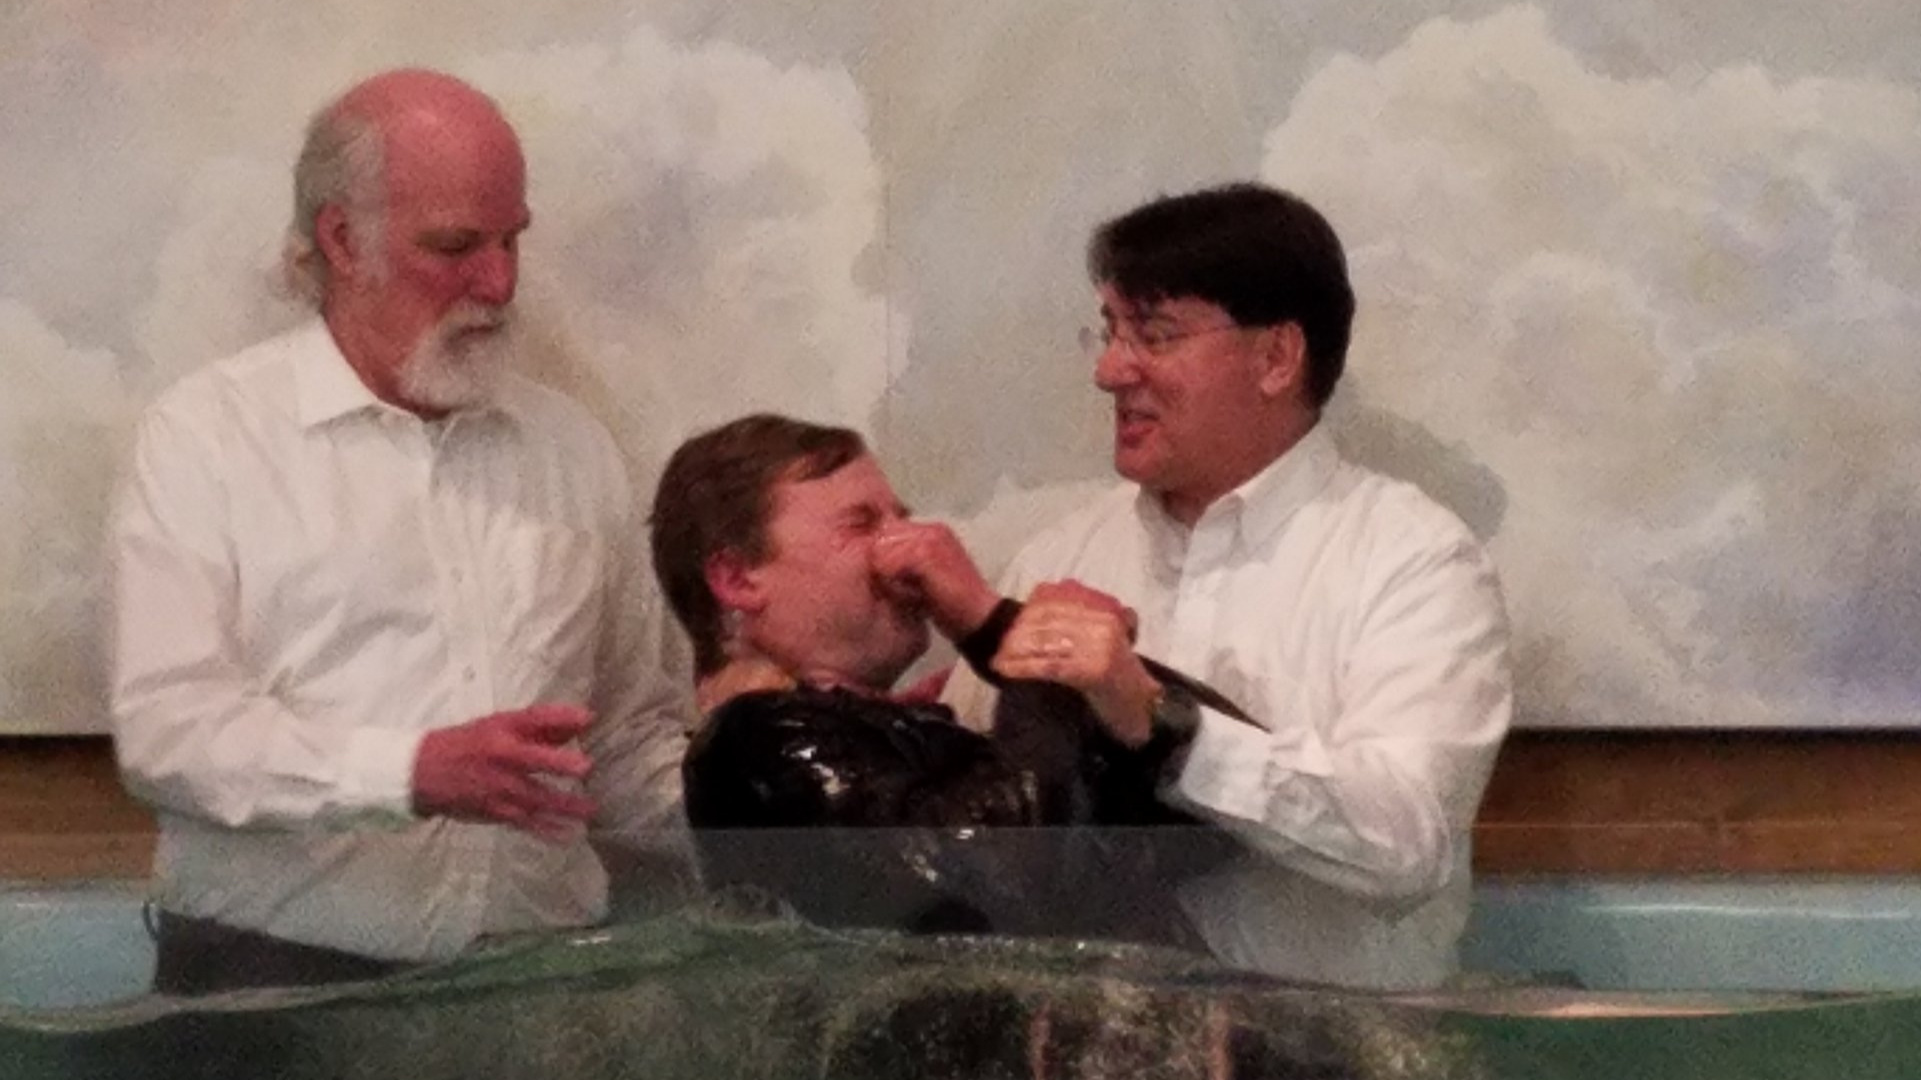 Water baptism during a Sunday service at West Rockport Baptist Church